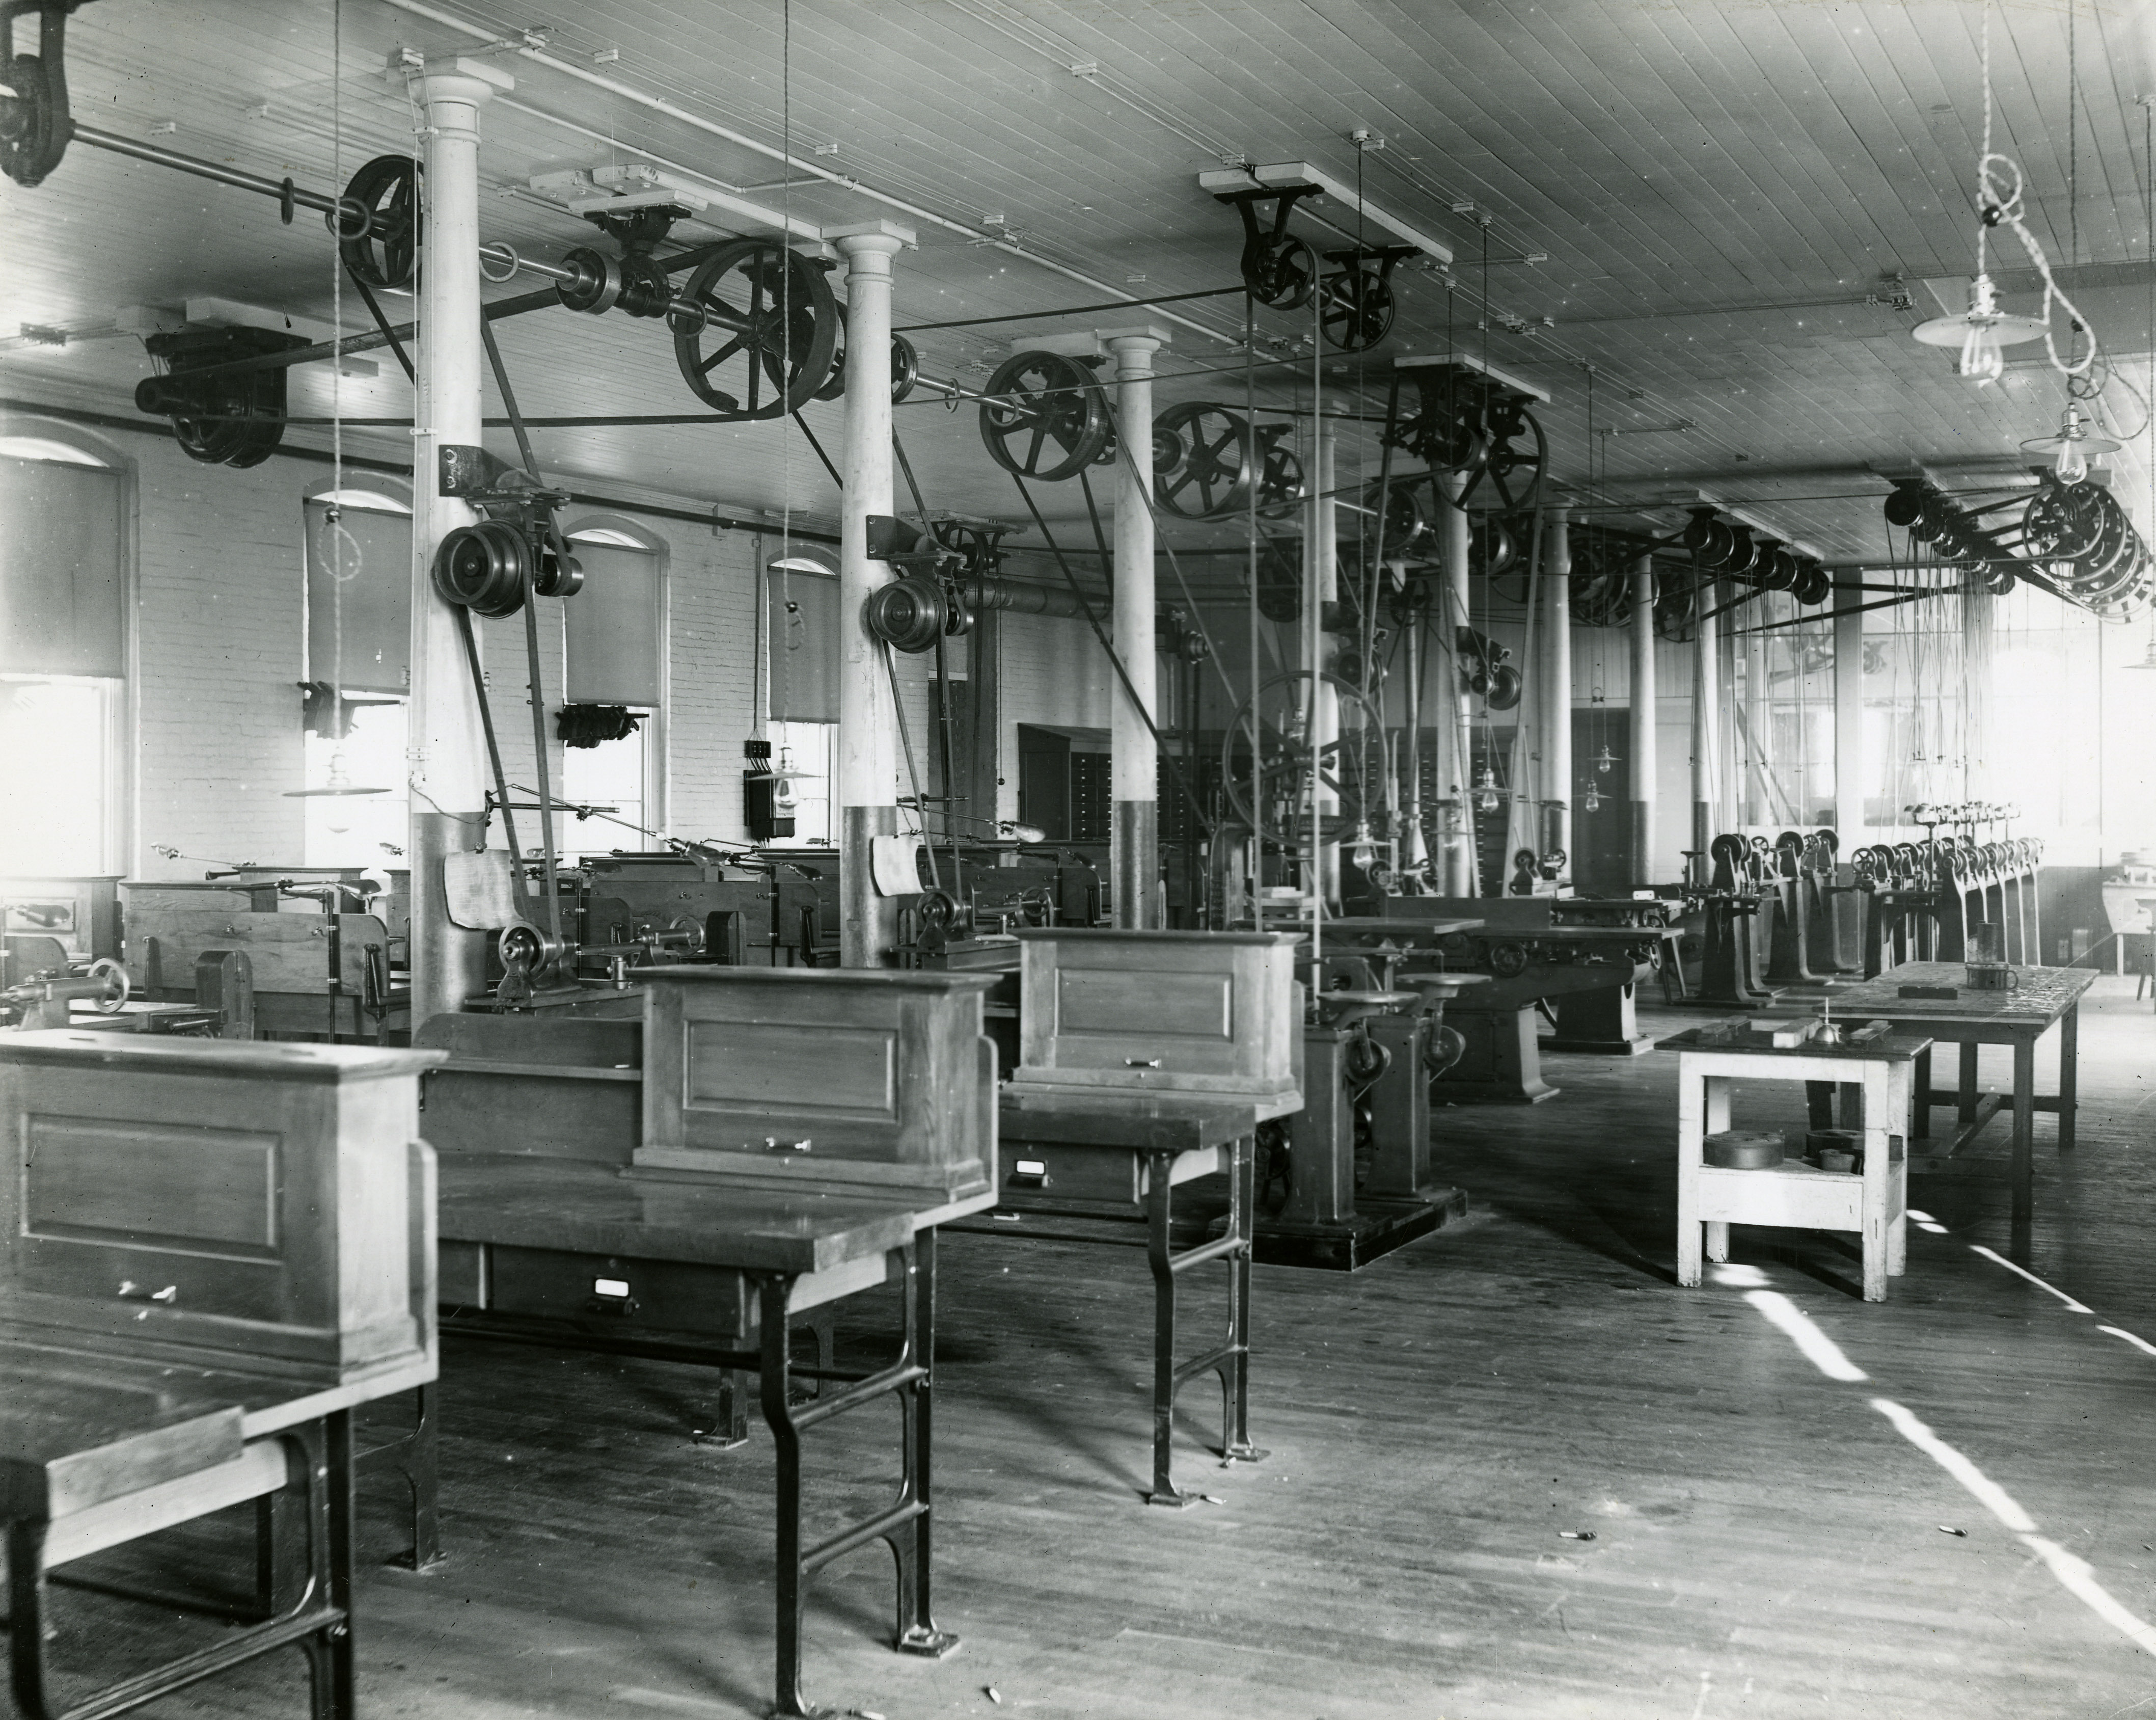 Washburn Shops interior